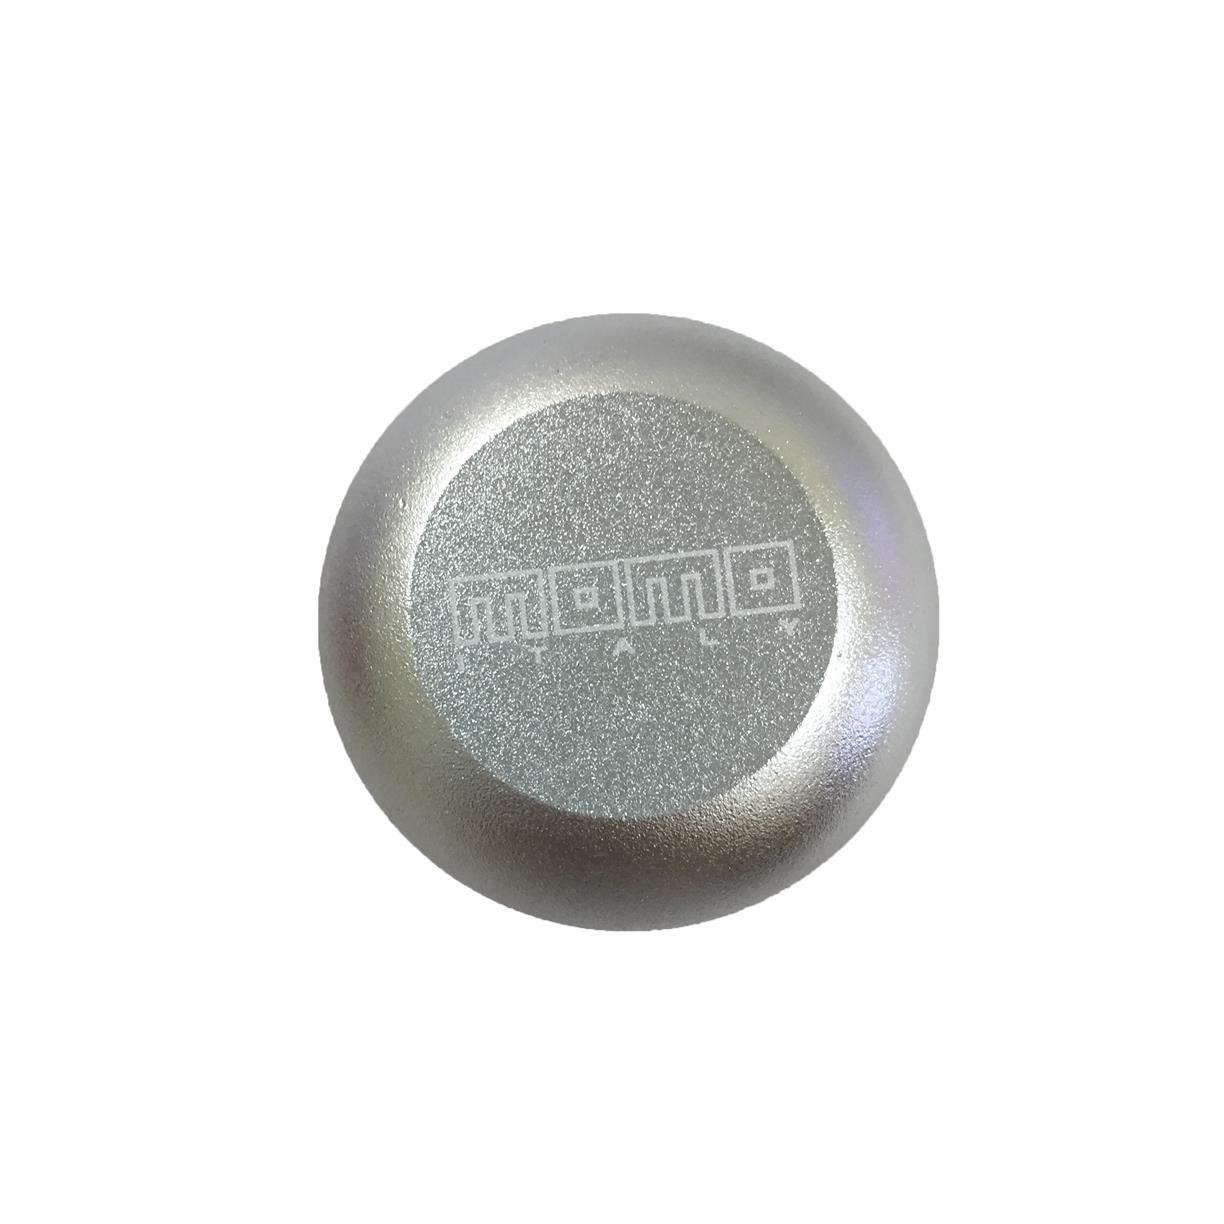 momo gear knob (manual)